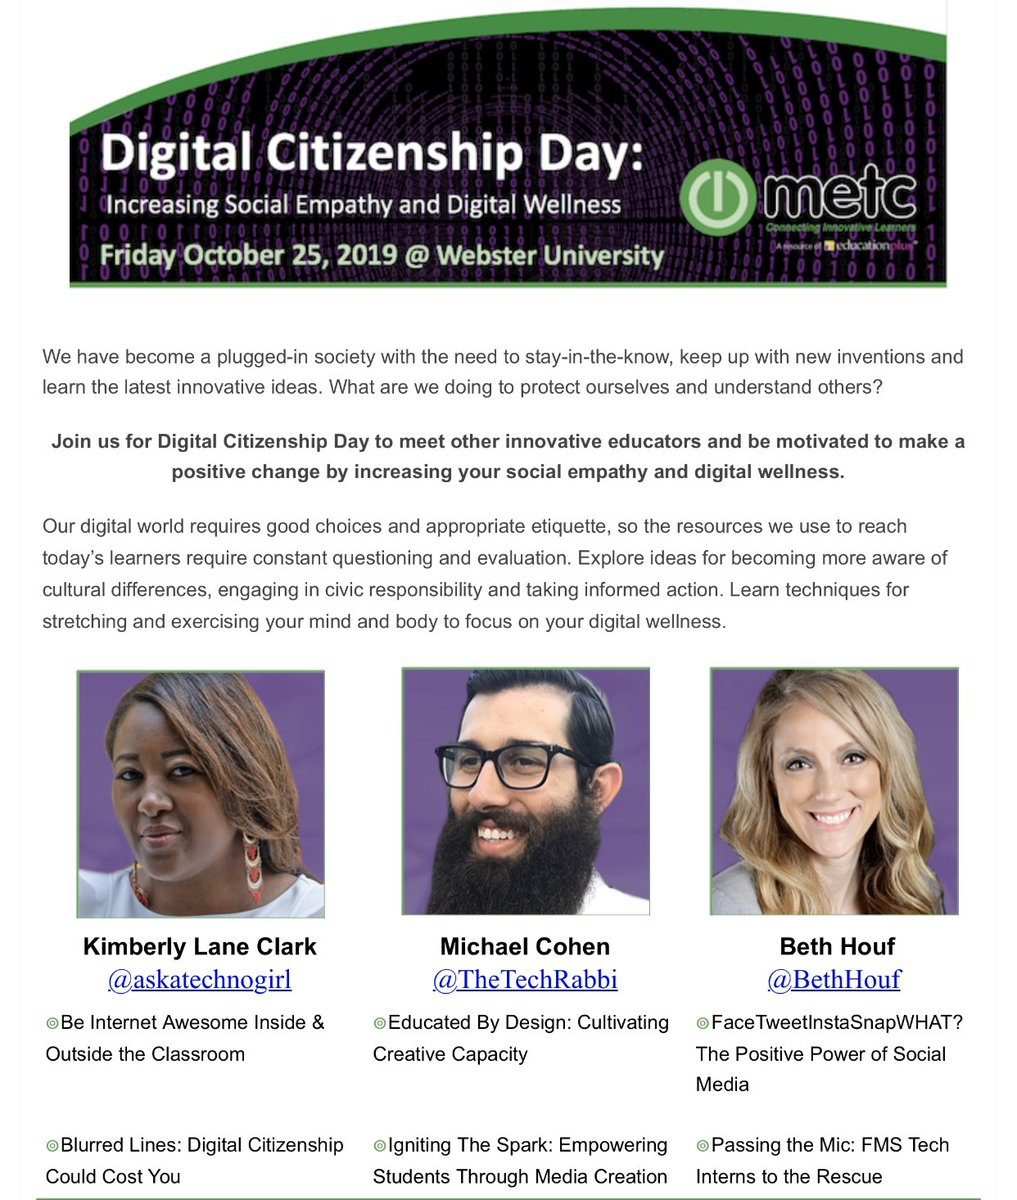 #DigCitDay next month! See you there with @askatechnogirl and @BethHouf! @METCedplus